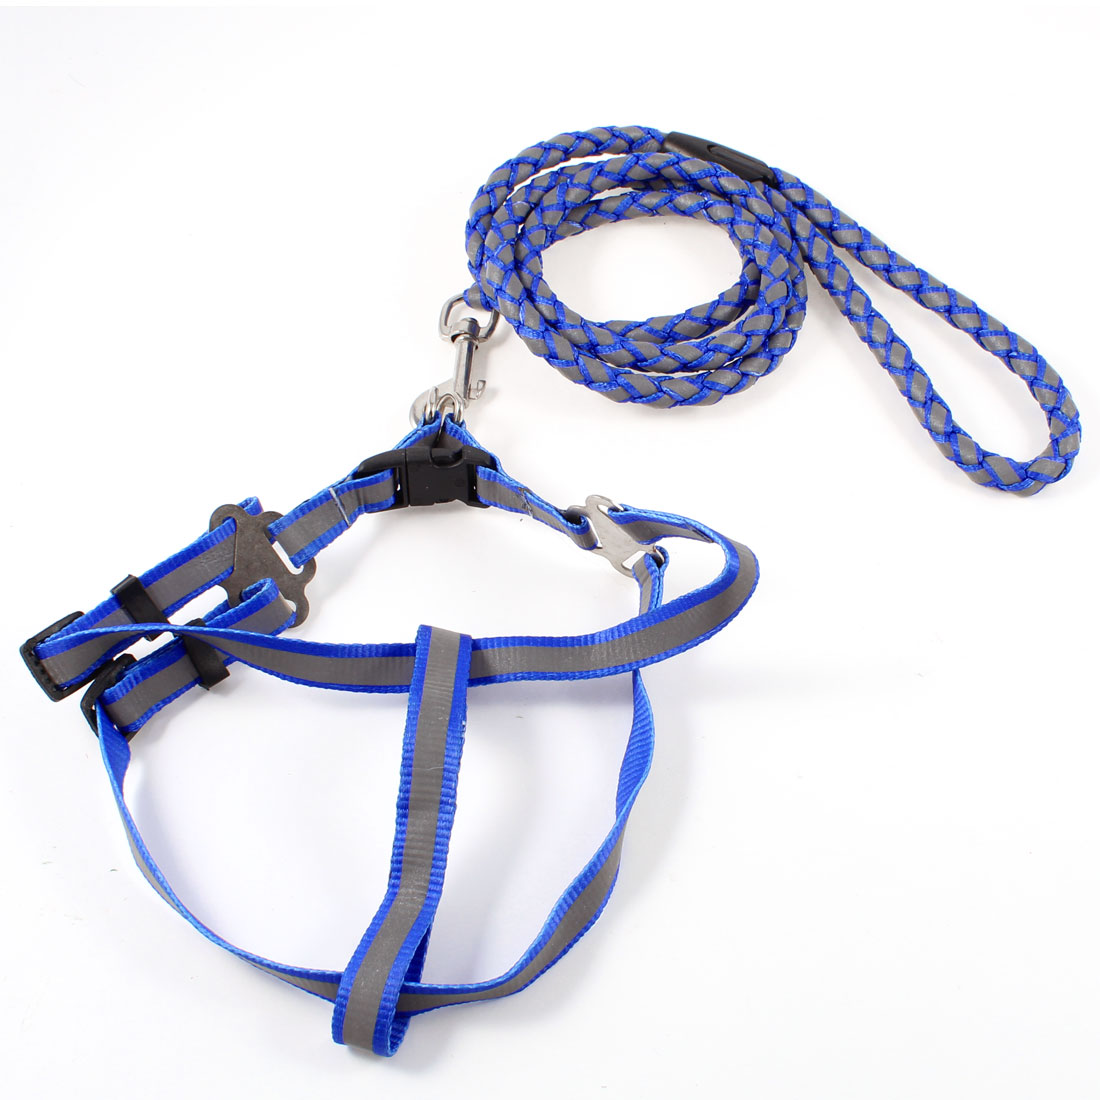 Nylon Round Rope Blue Gray Reflective Pet Dog Harness Leash w Swivel Clasp Hook